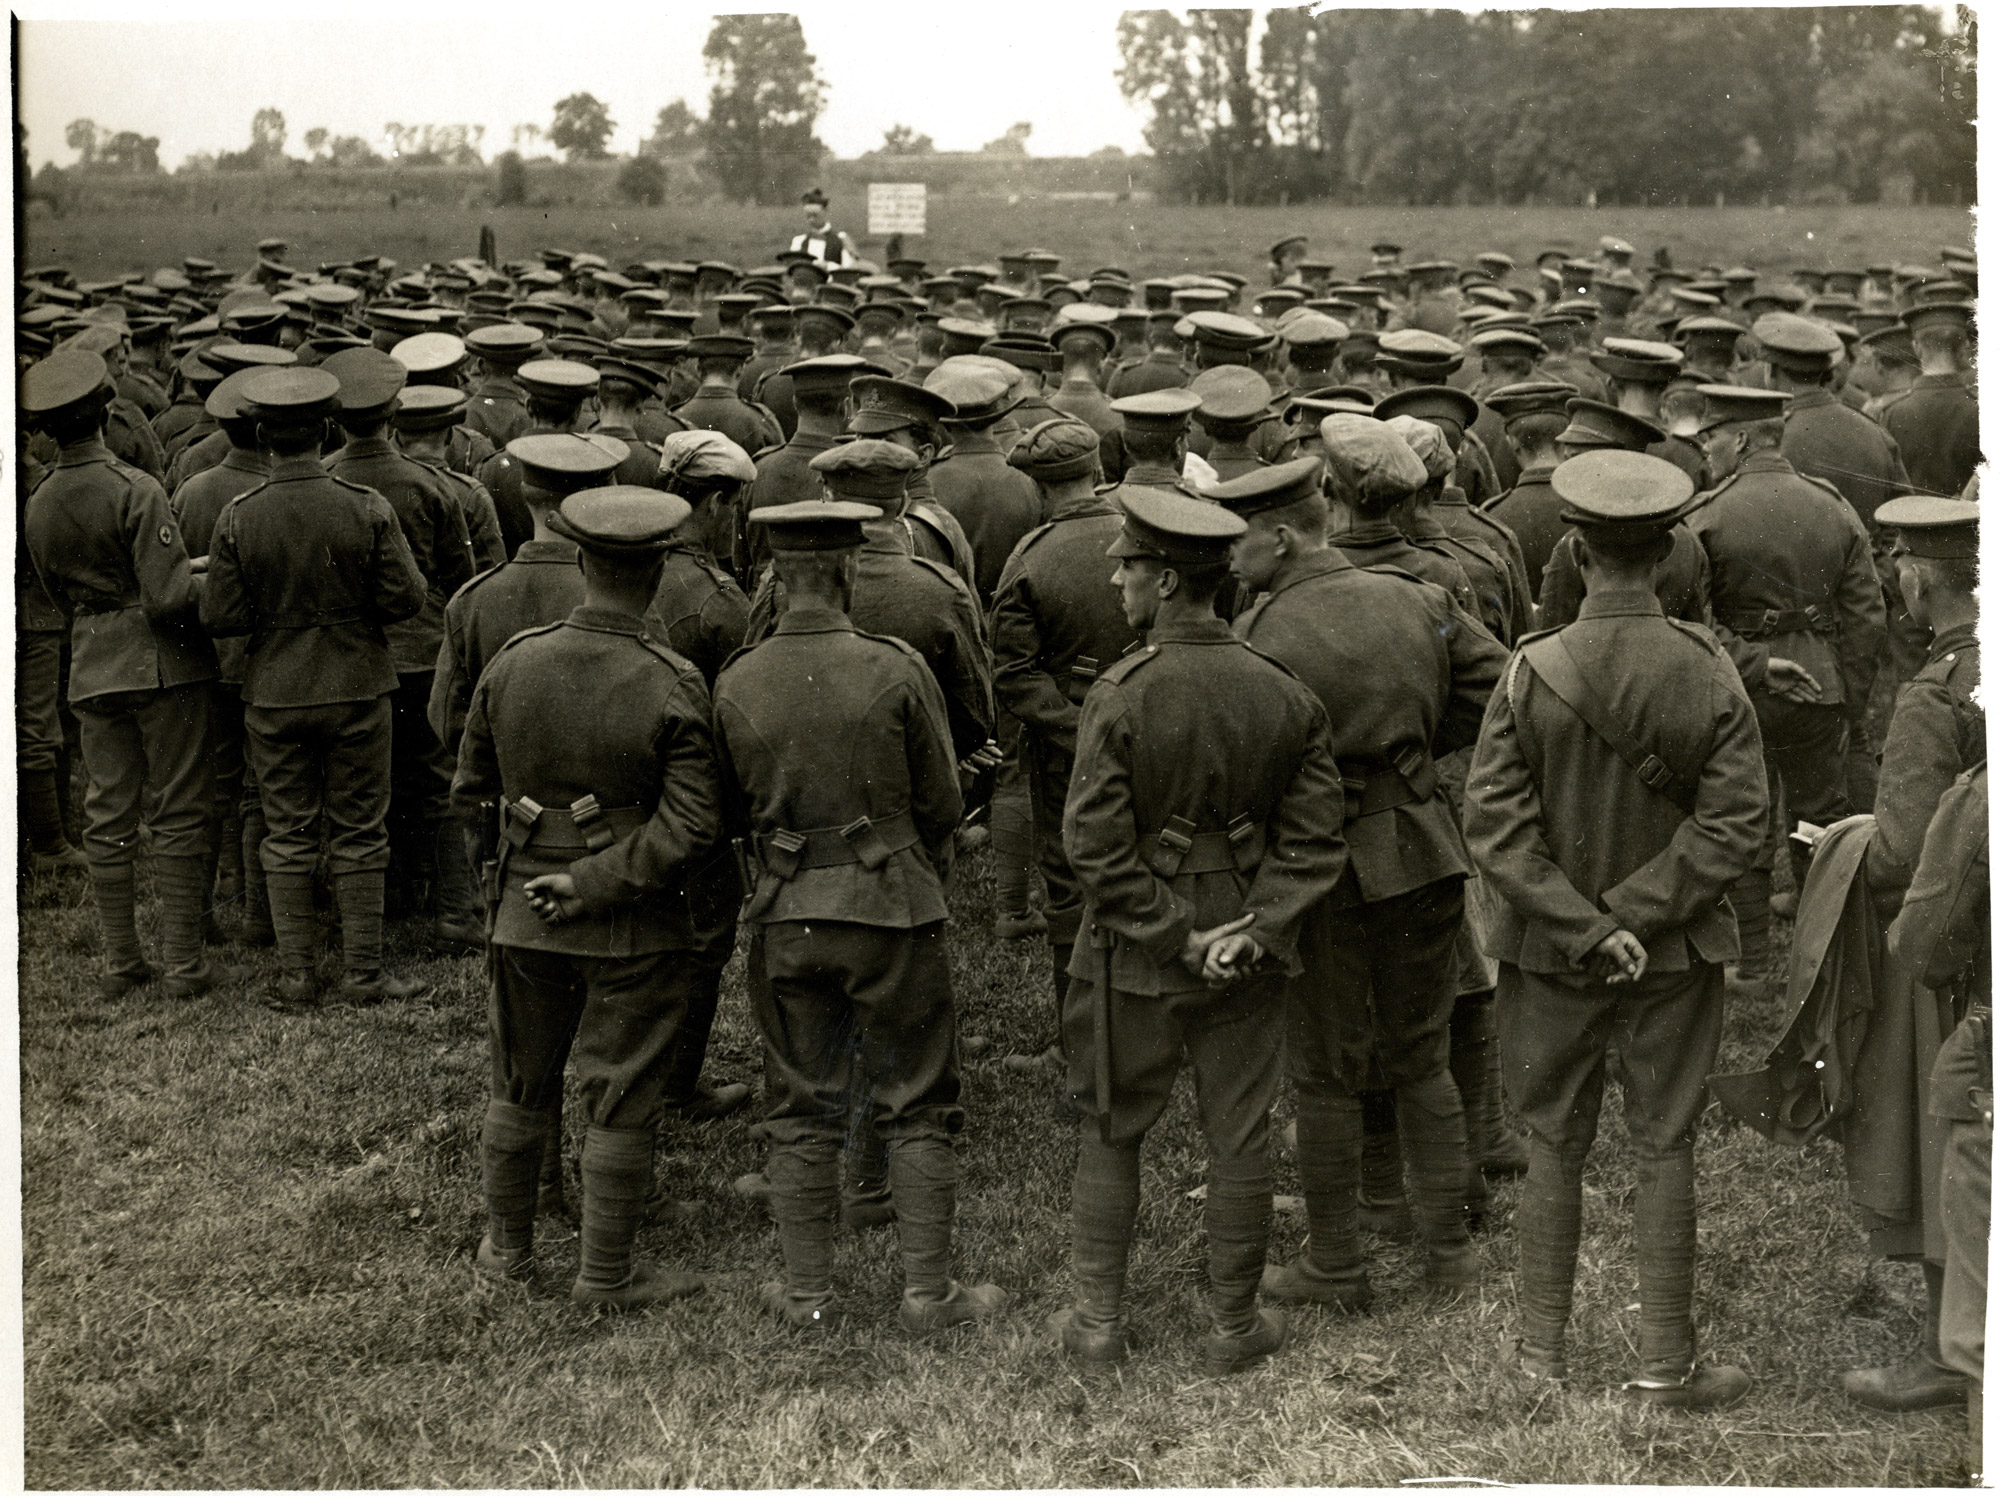 Photograph, 1915, showing a large group of soldiers attending a church service in a field. The priest can be seen in the middle of the picture towards the back.